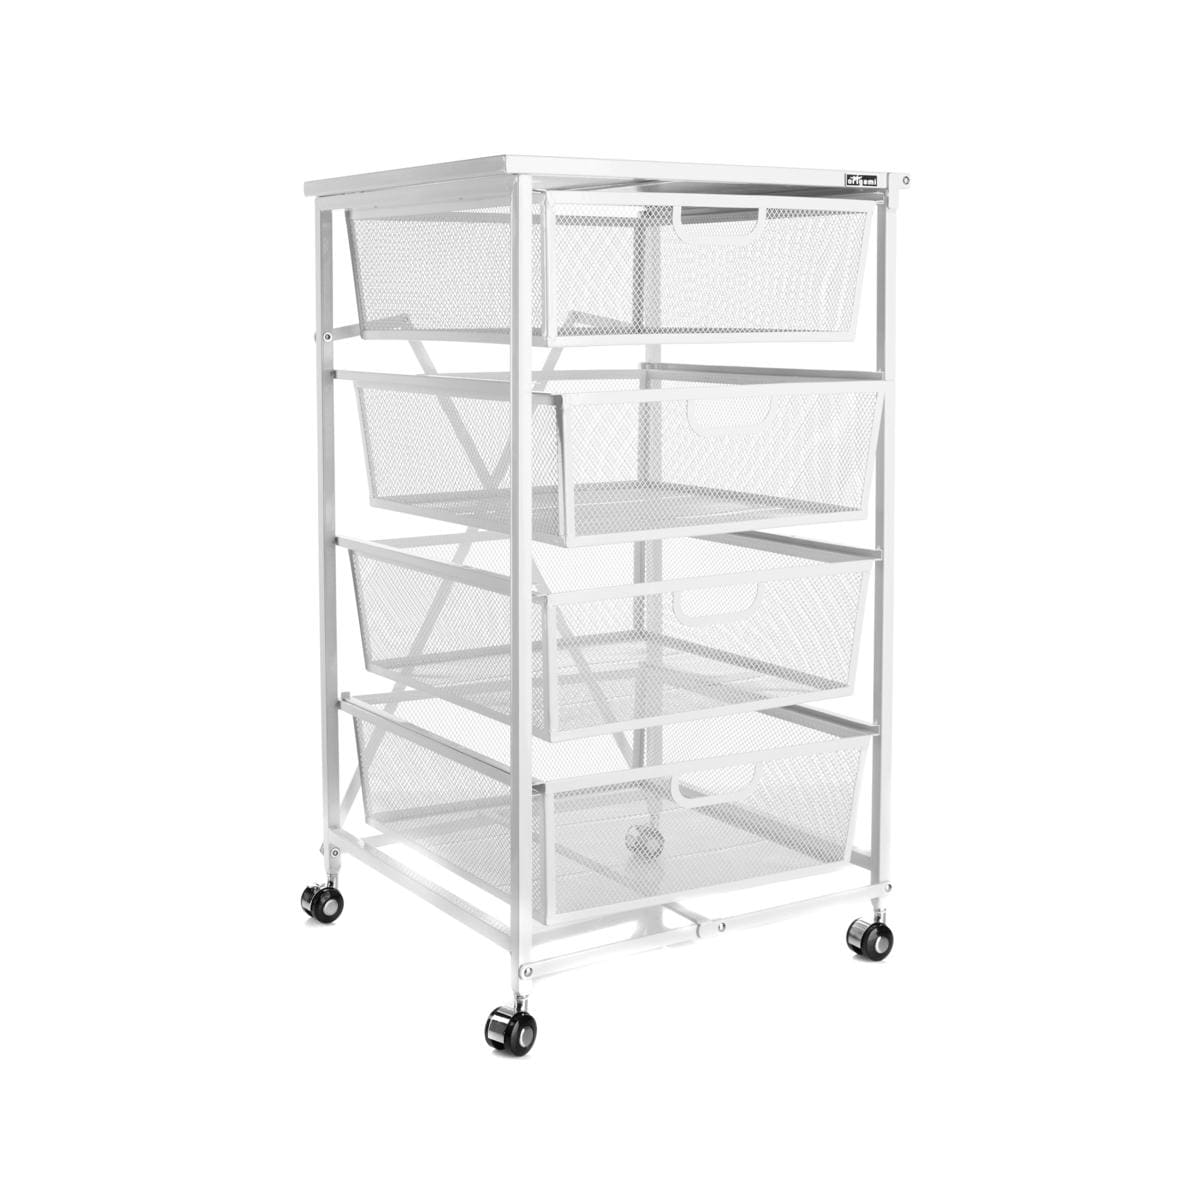 Kitchen Cart With Drawers: Origami 4-Drawer Kitchen Cart With Wood Shelf White NEW